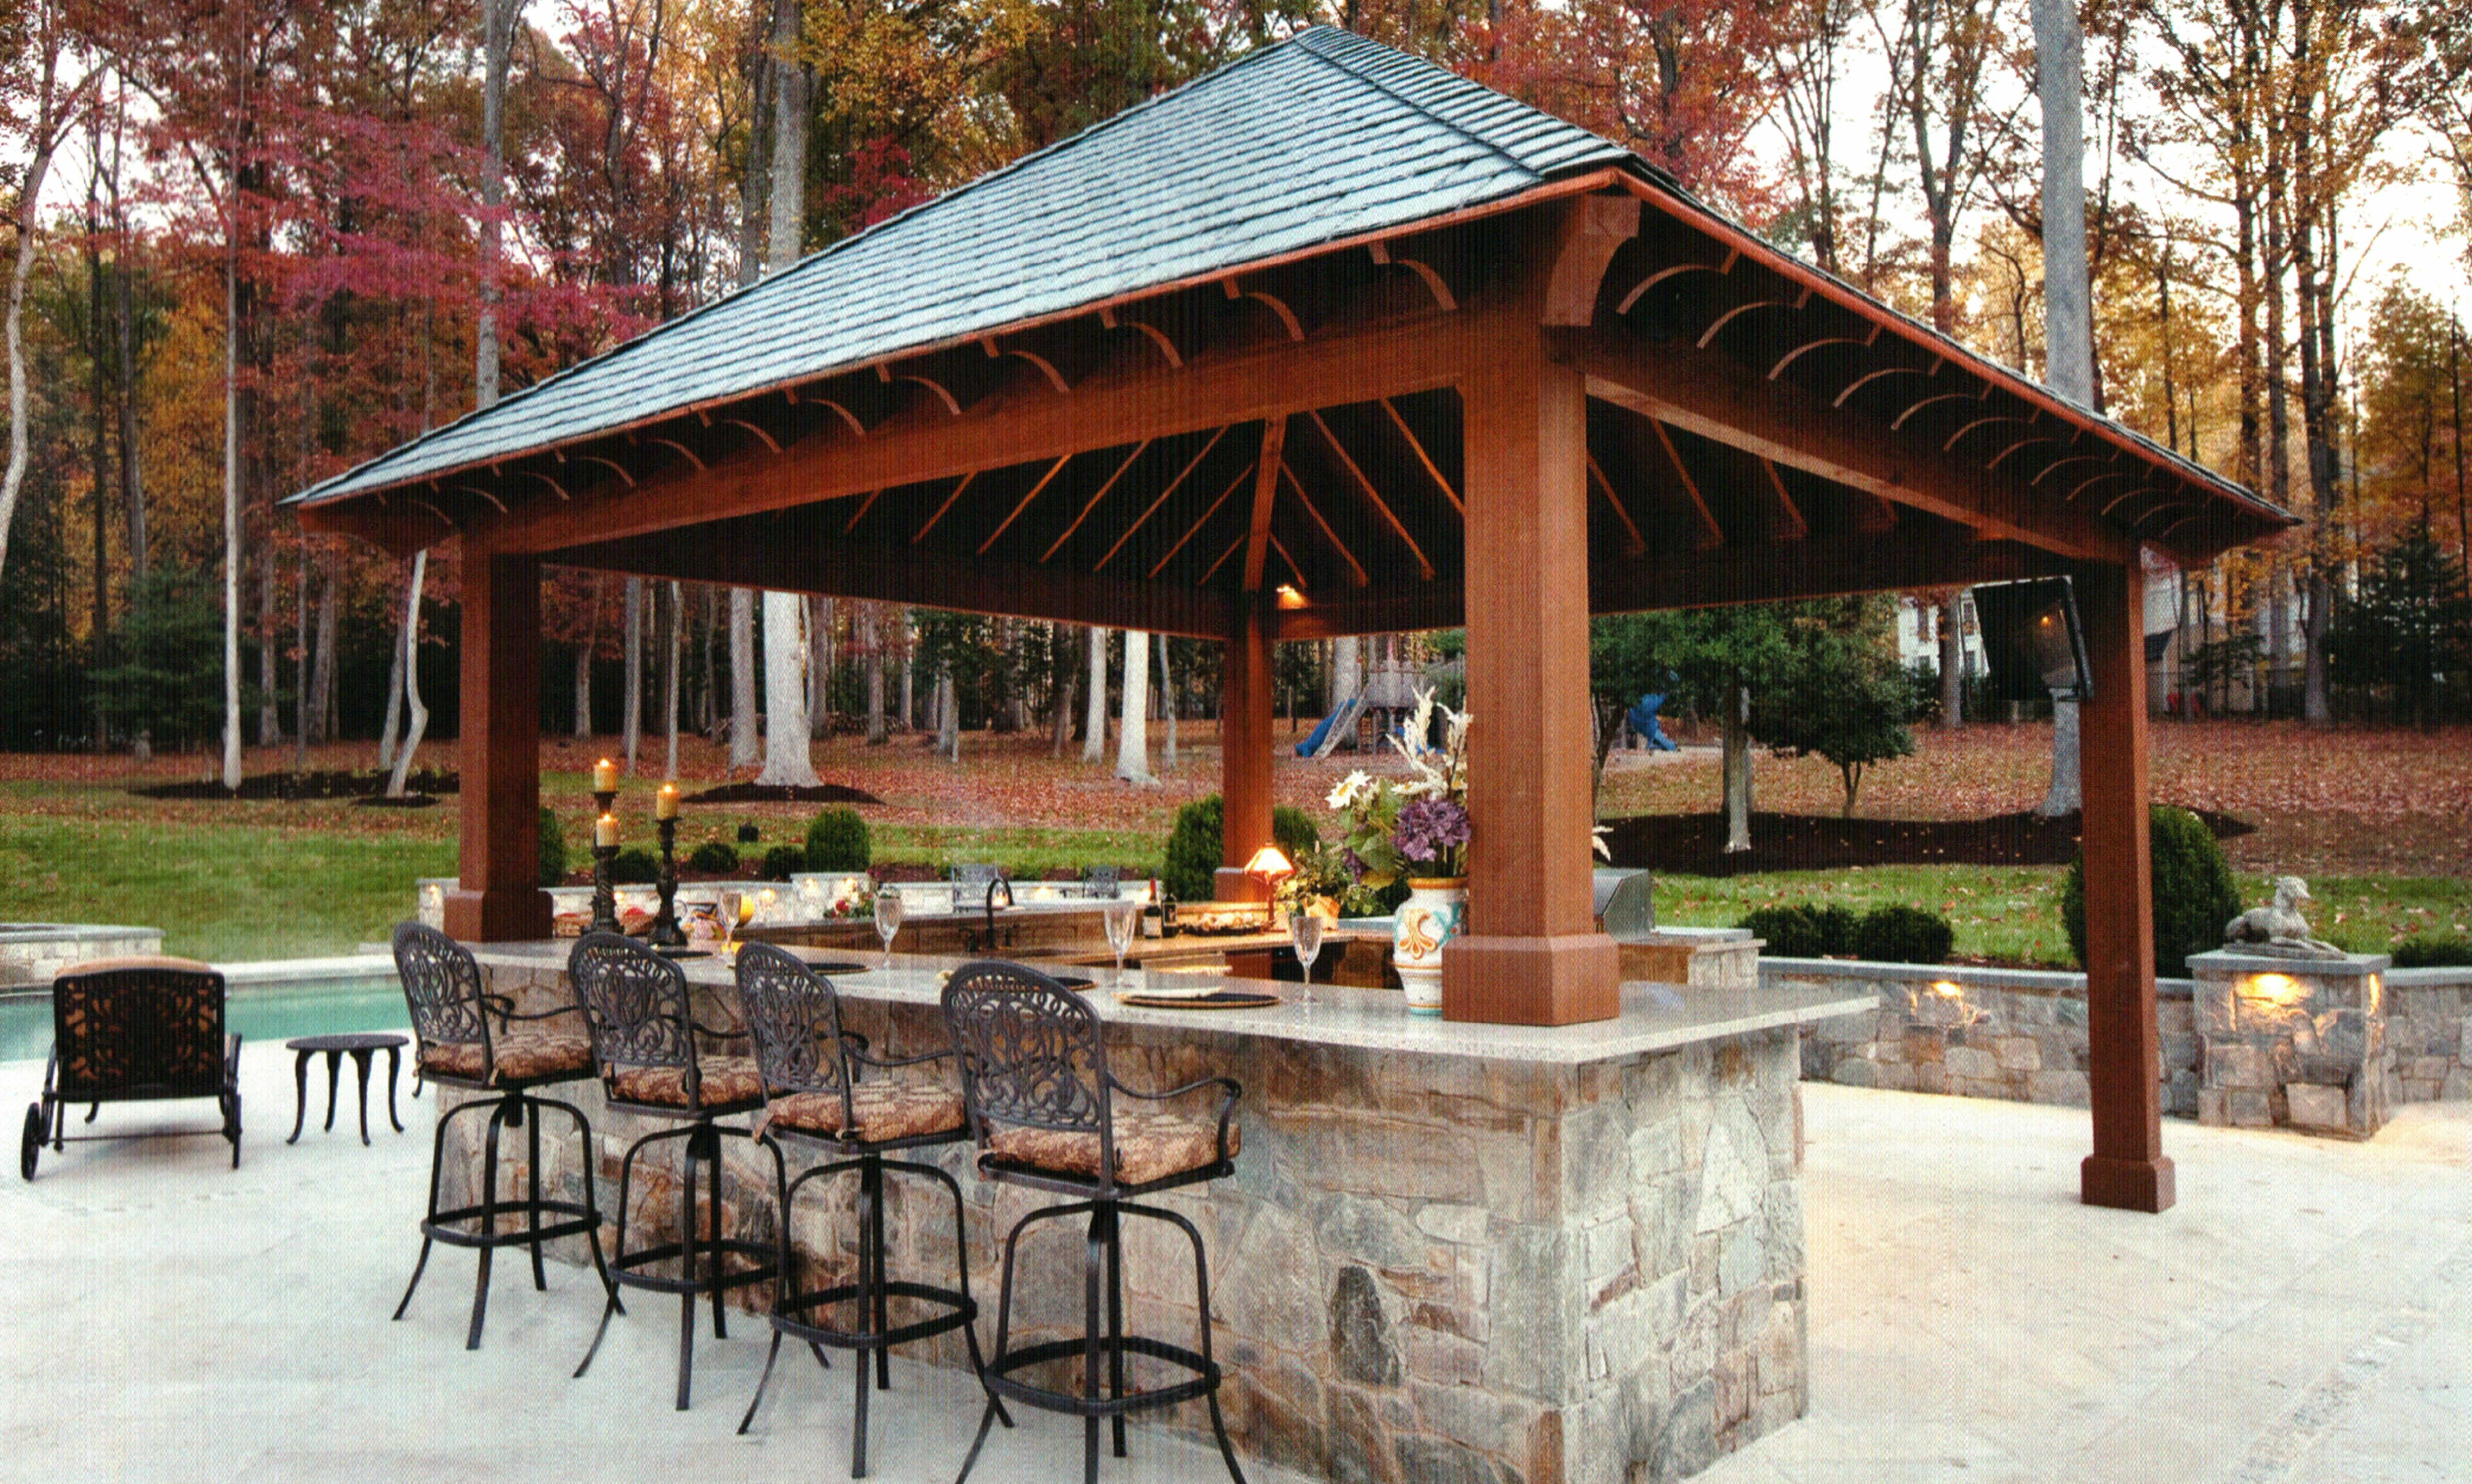 20 Awesome Outdoor Bar Ideas For Backyard Allowed To Be Able To Our Blog In This Occasion I M Going To Provide You Wit Backyard Bar Pergola Outdoor Backyard